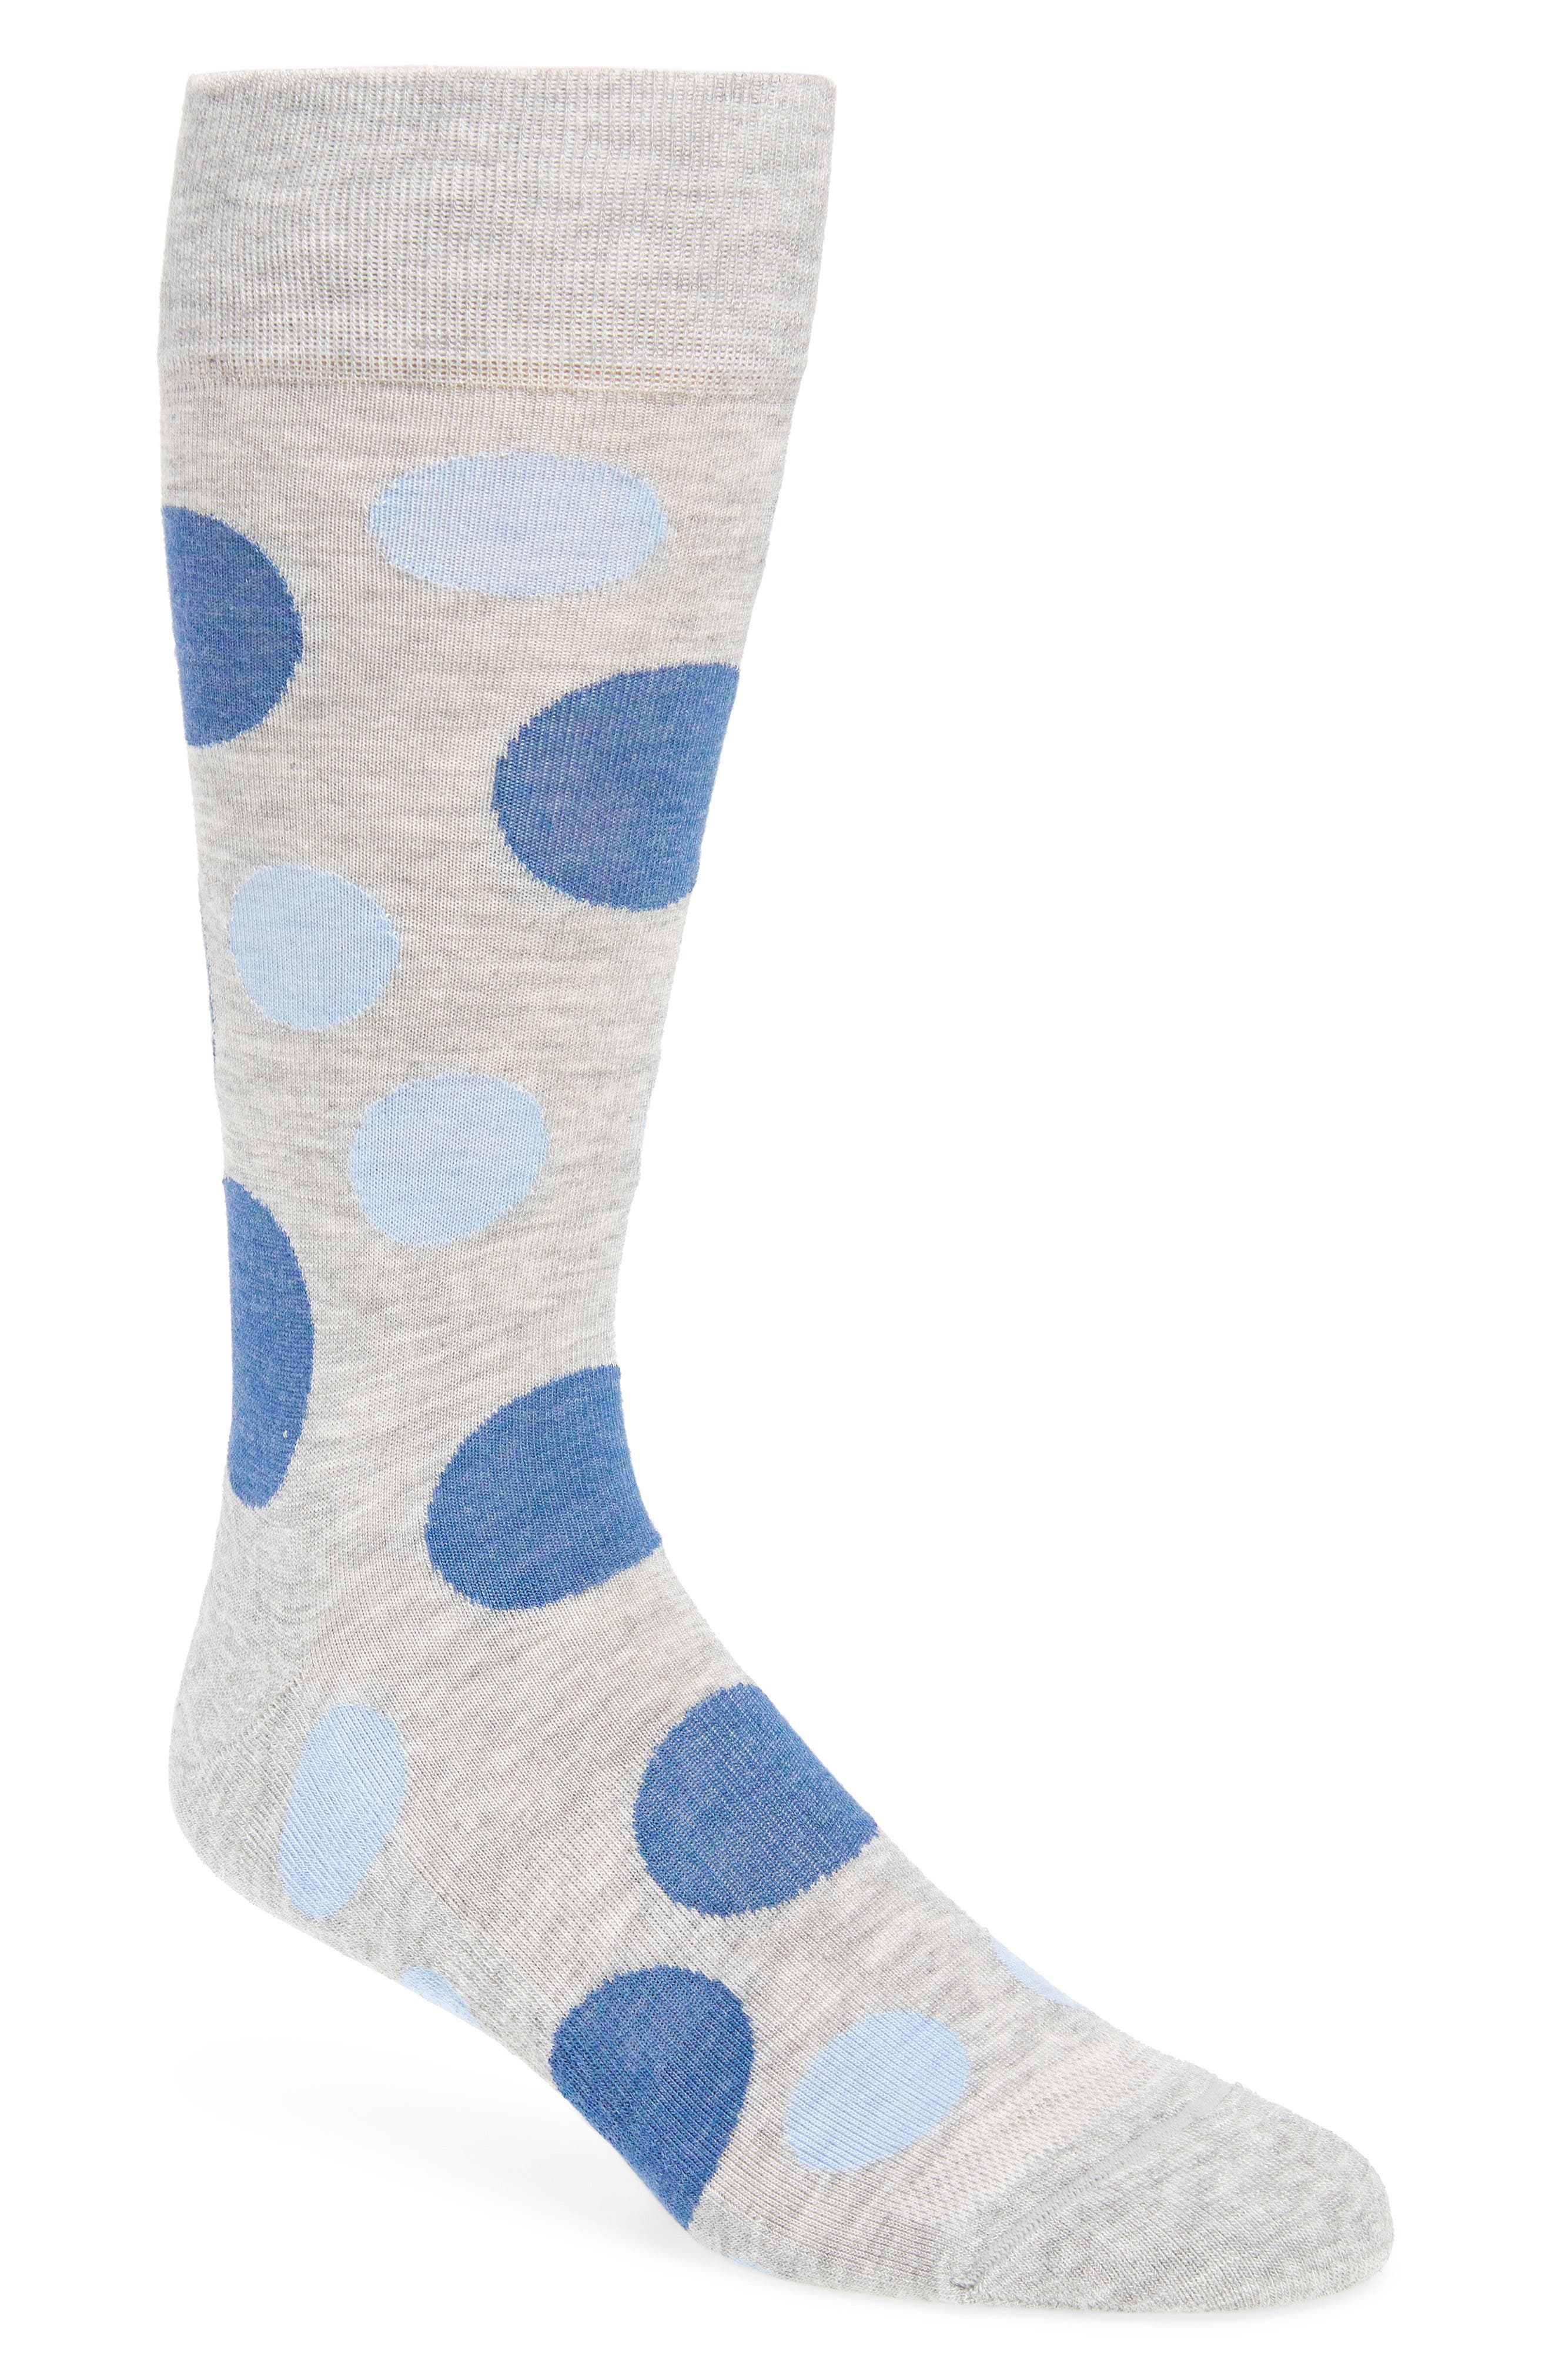 Dot Socks,                         Main,                         color, 030